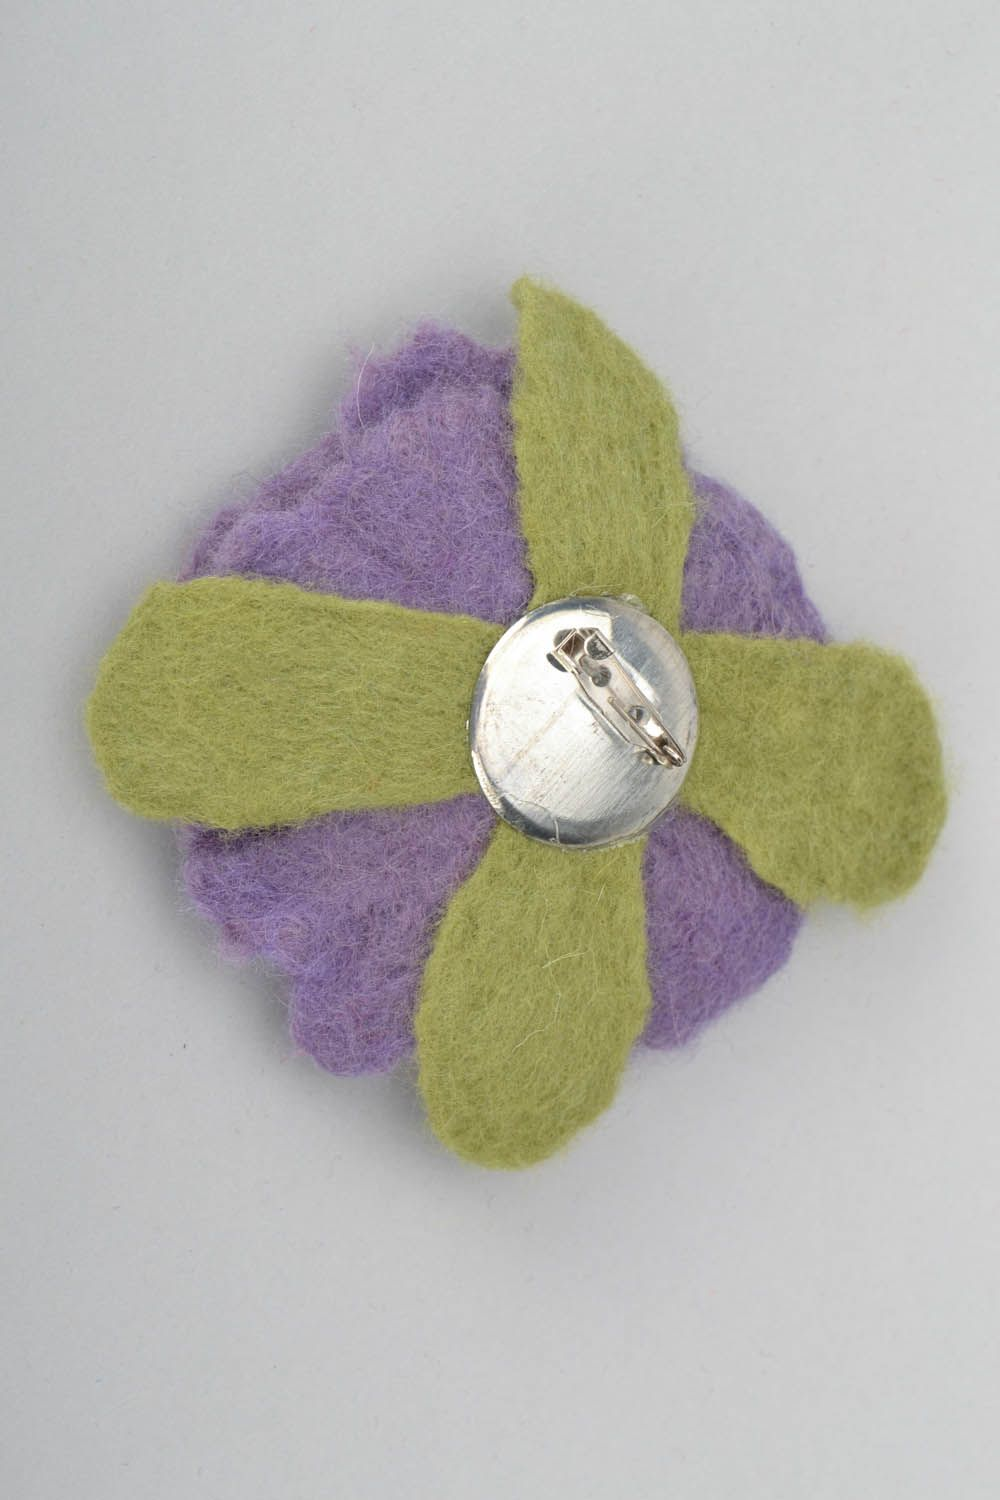 Brooch made using the felting wool technique photo 5